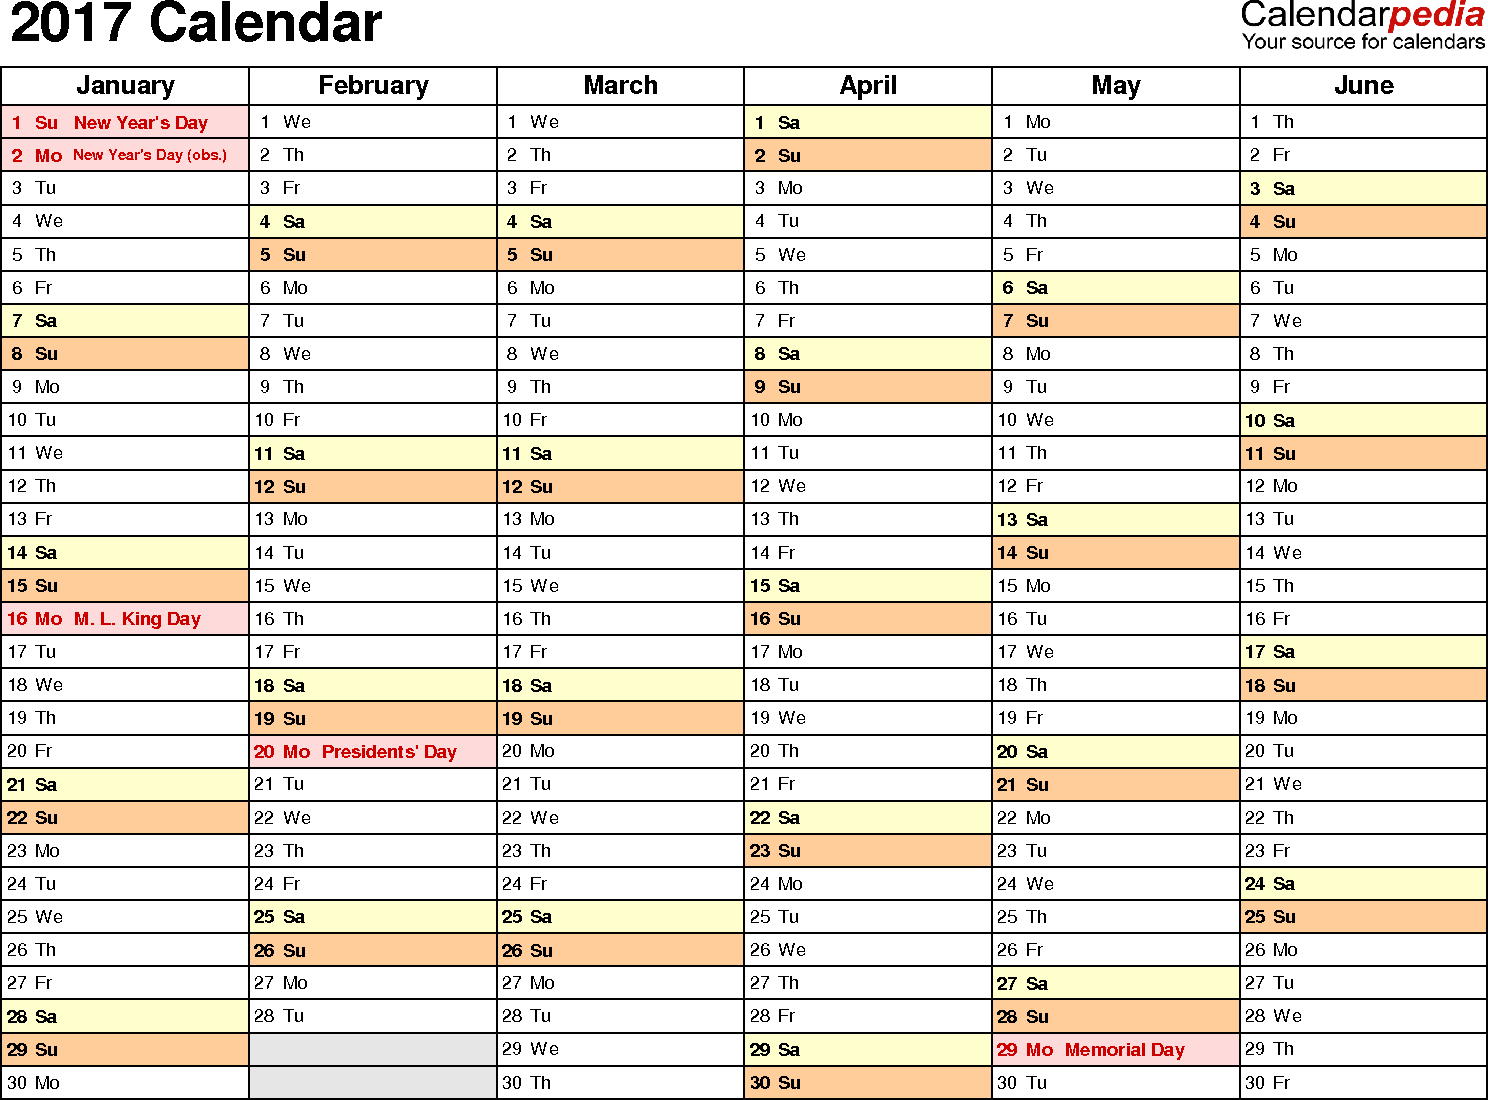 Ediblewildsus  Remarkable  Calendar  Download  Free Printable Excel Templates Xls With Great Template   Calendar For Excel Months Horizontally  Pages Landscape Orientation With Archaic Excel File Extension Also Compare Two Excel Sheets In Addition Create Drop Down In Excel And How To Write Formulas In Excel As Well As Lock Formulas In Excel Additionally How To Do Excel From Calendarpediacom With Ediblewildsus  Great  Calendar  Download  Free Printable Excel Templates Xls With Archaic Template   Calendar For Excel Months Horizontally  Pages Landscape Orientation And Remarkable Excel File Extension Also Compare Two Excel Sheets In Addition Create Drop Down In Excel From Calendarpediacom